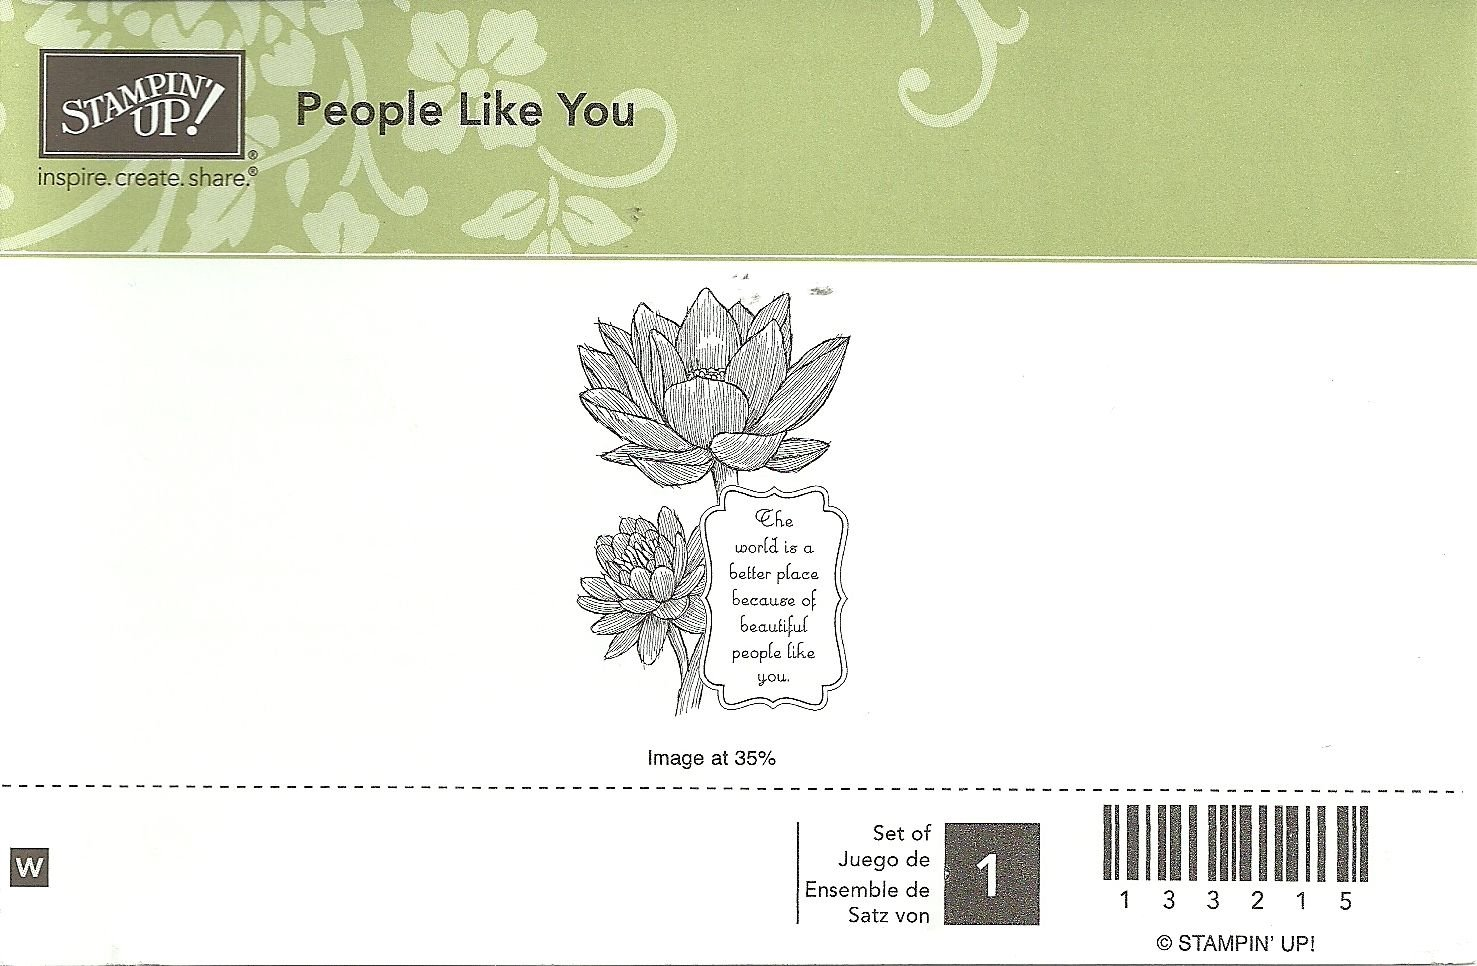 PEOPLE LIKE YOU - STAMPIN' UP! - Retired Rubber Stamp - NEW - WOOD BLOCK 133215